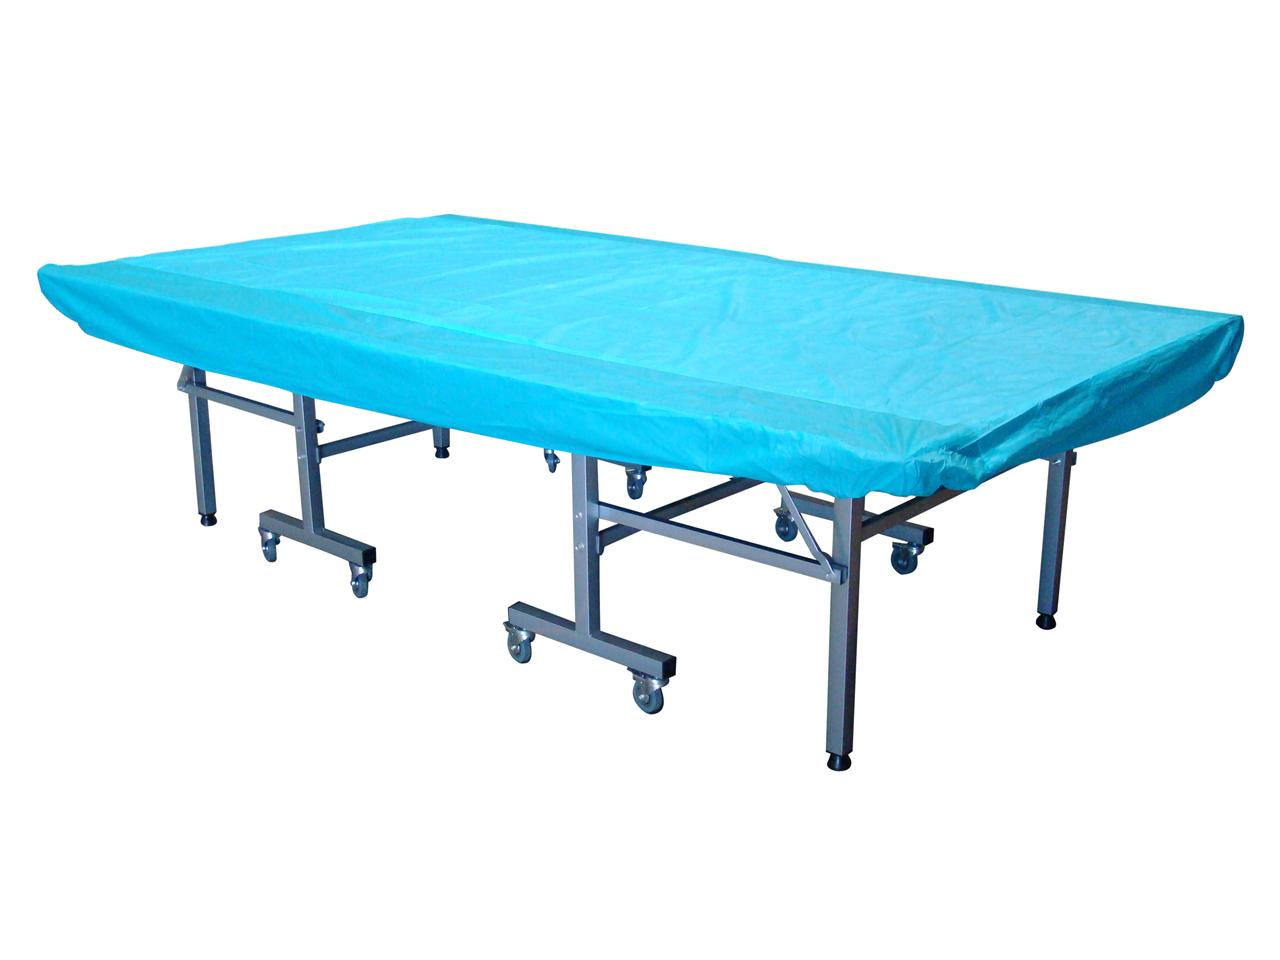 Indoor Multifunctional Cover For Table Tennis Ping Pong Table